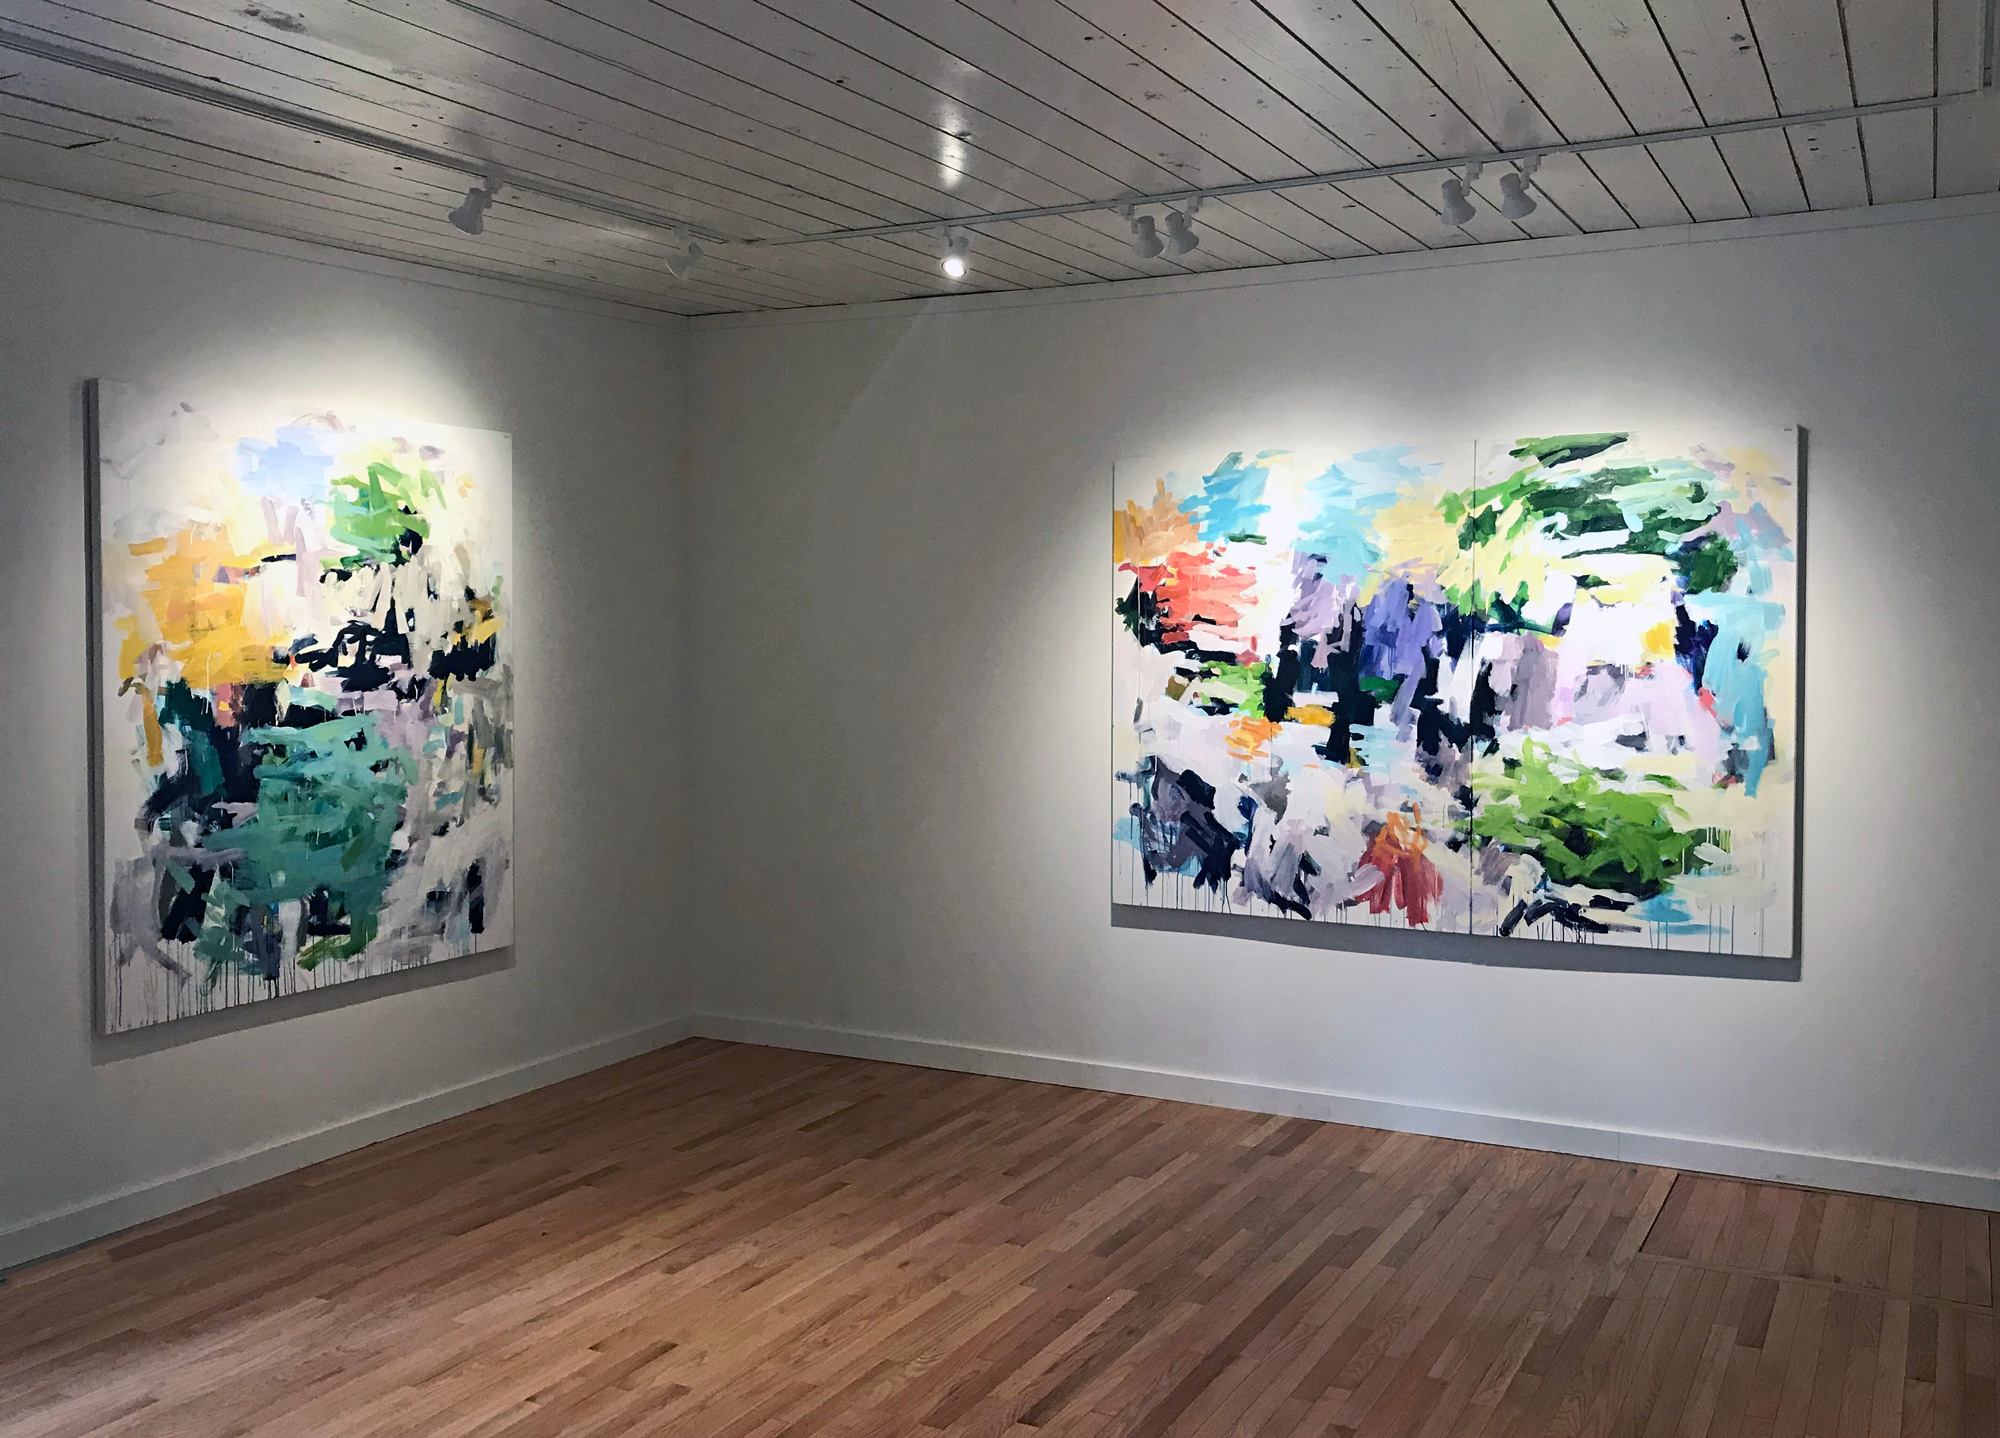 cynthia-reeves-gallery-karen-silve-exhibition